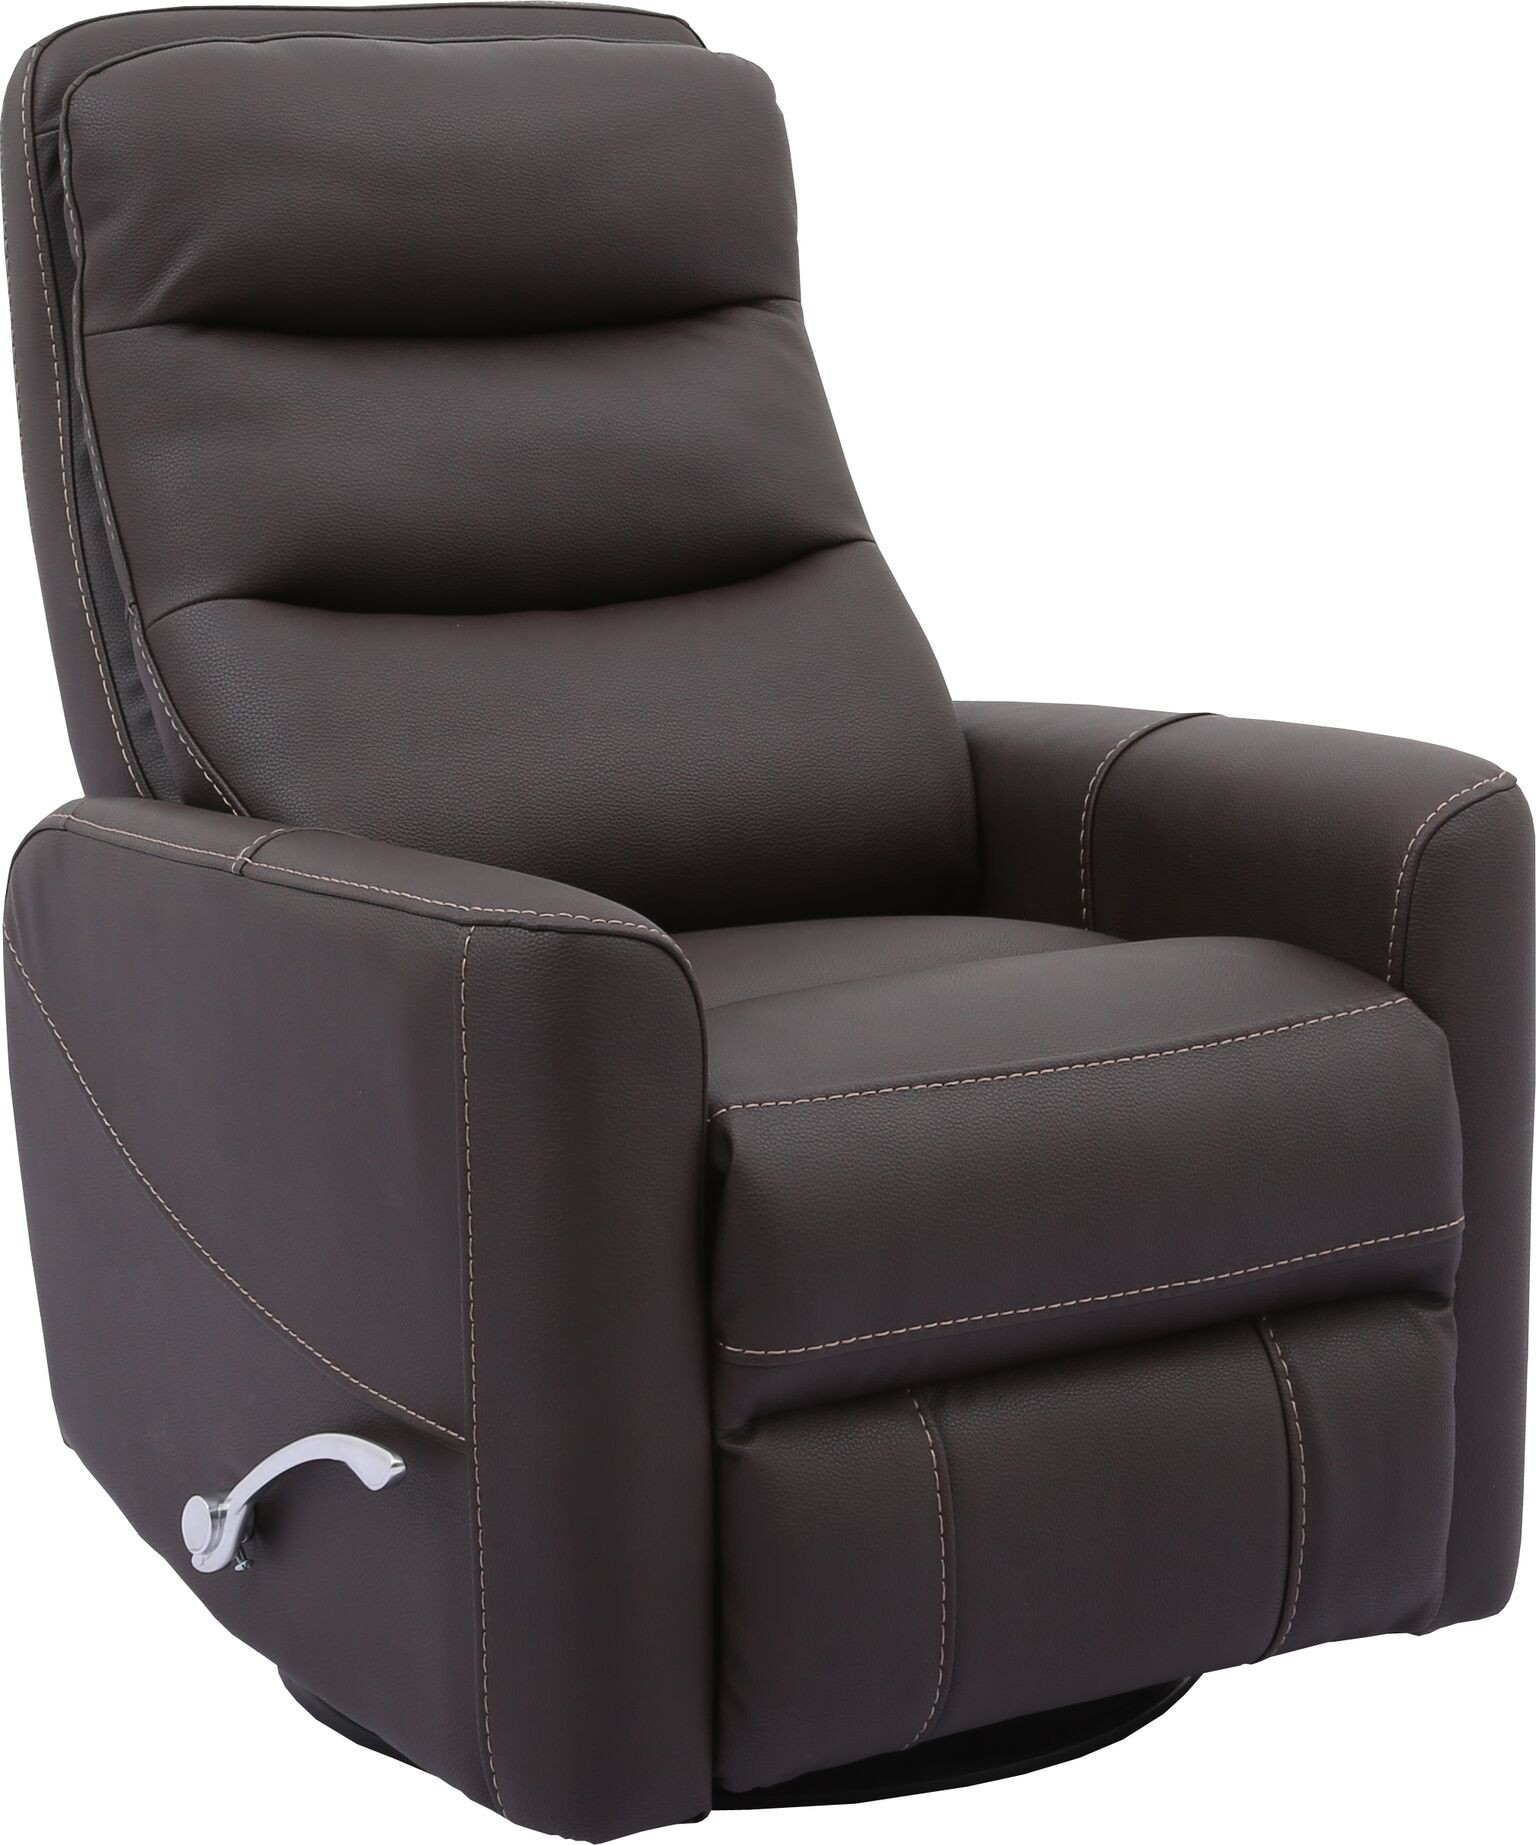 Hercules -Chocolate- Swivel Glider Recliner With Articulating Headrest pertaining to Hercules Chocolate Swivel Glider Recliners